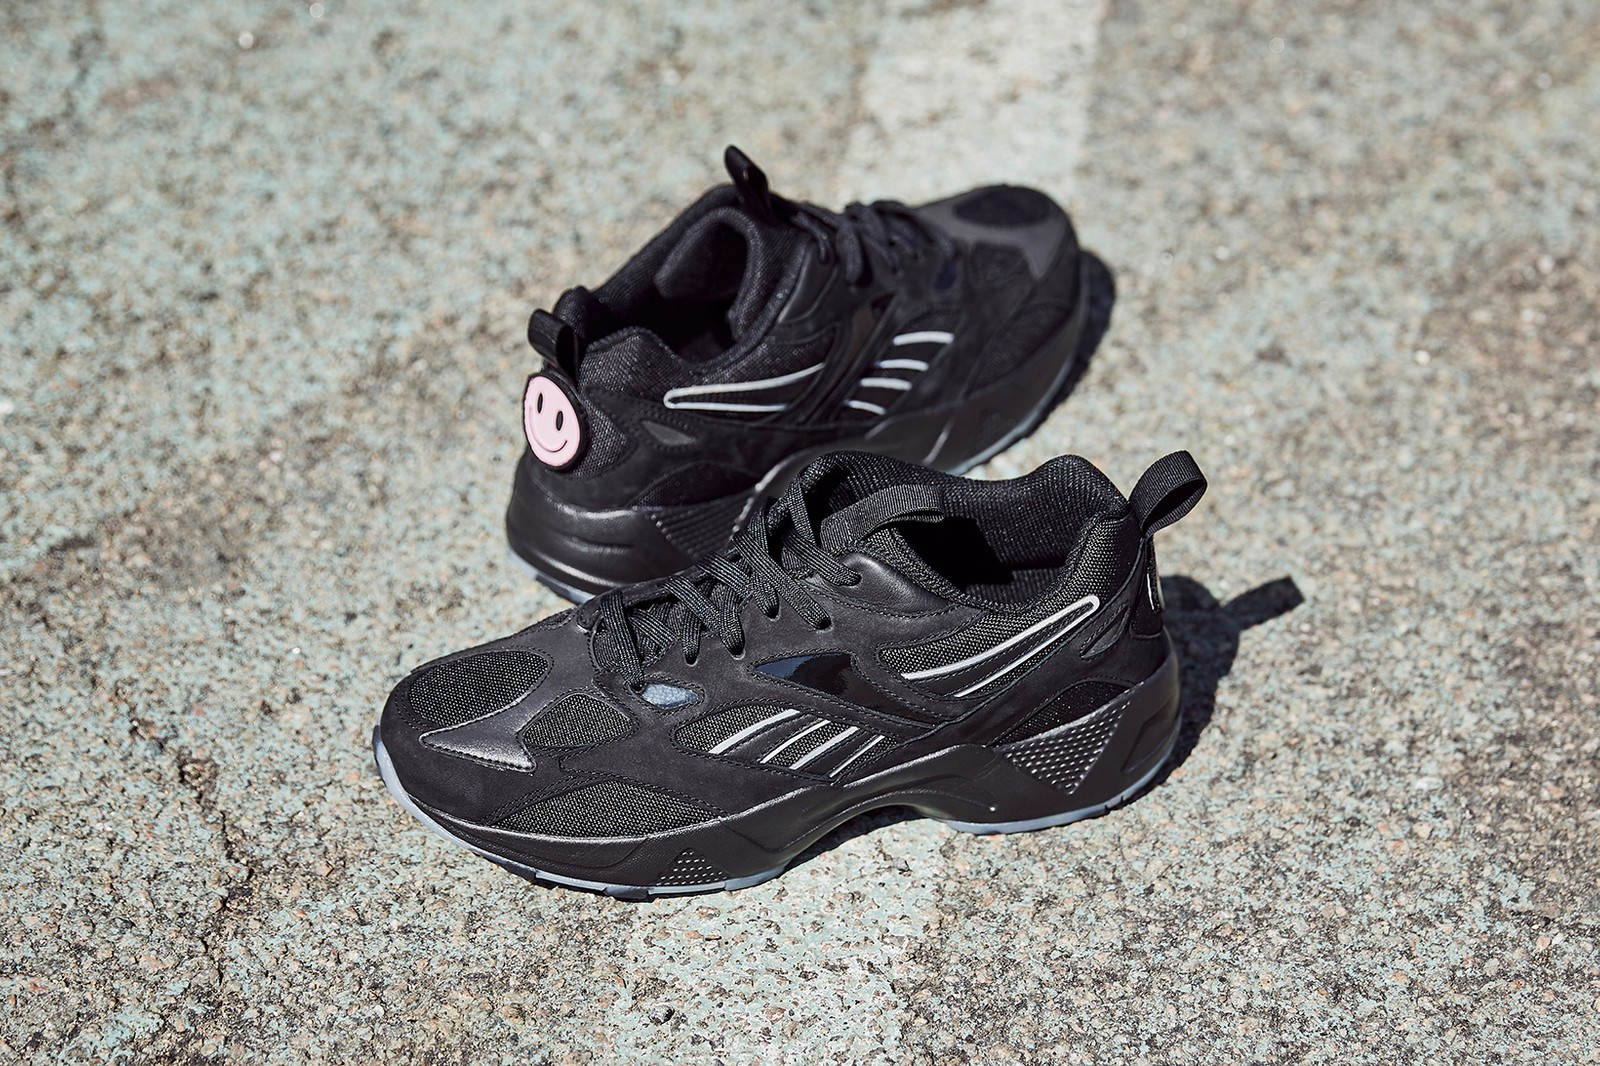 reebok ebony naomi oshunrinde wondagurl aztrek 96 sneakers its a mans world campaign footwear shoes sneakerhead